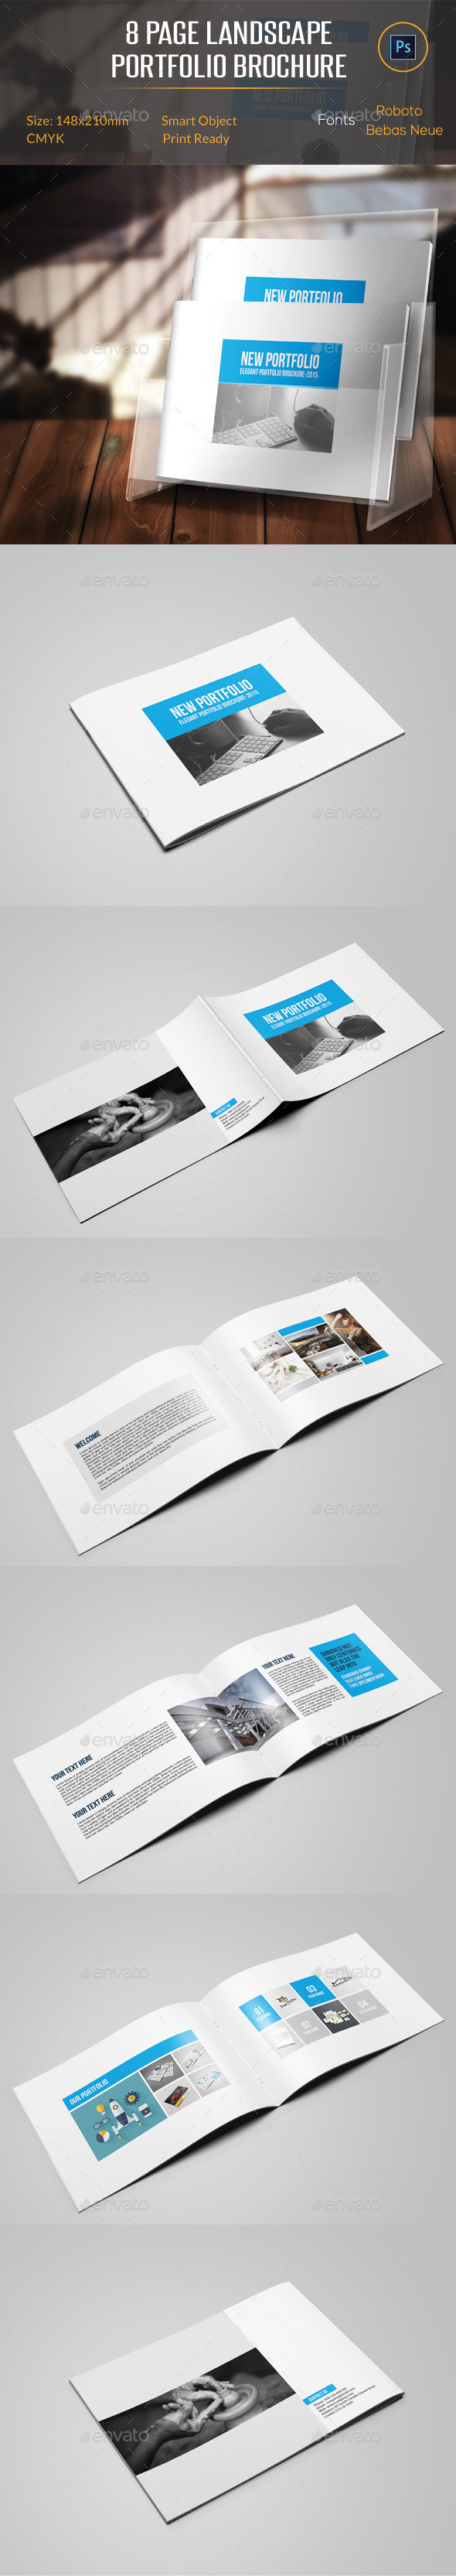 GraphicRiver 8 Pages Landscape Portfolio Brochure 11439120